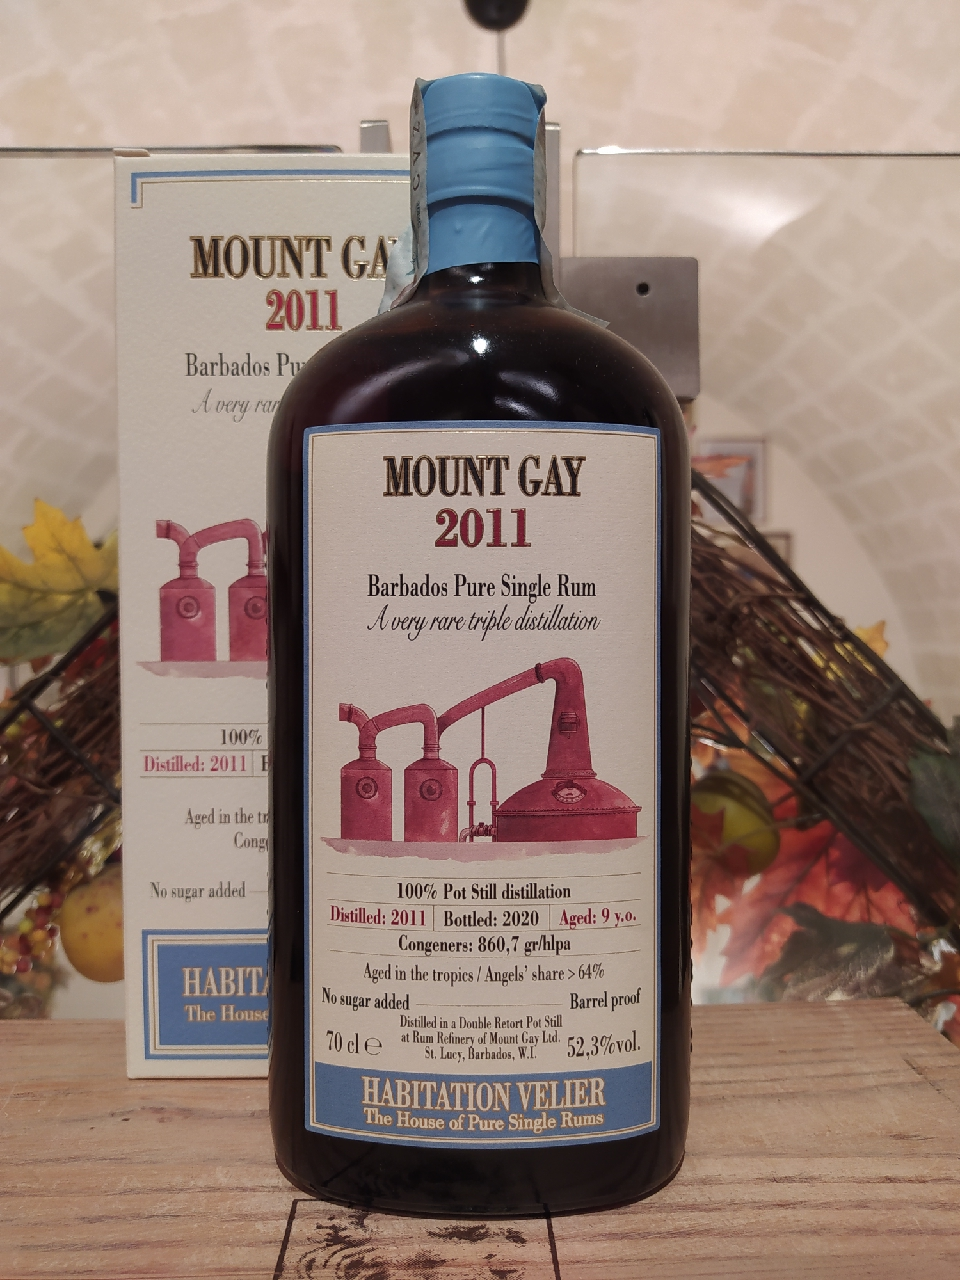 Mount Gay Barbados Pure Single Rum Triple Distillation 2011 9 YO by Habitation Velier